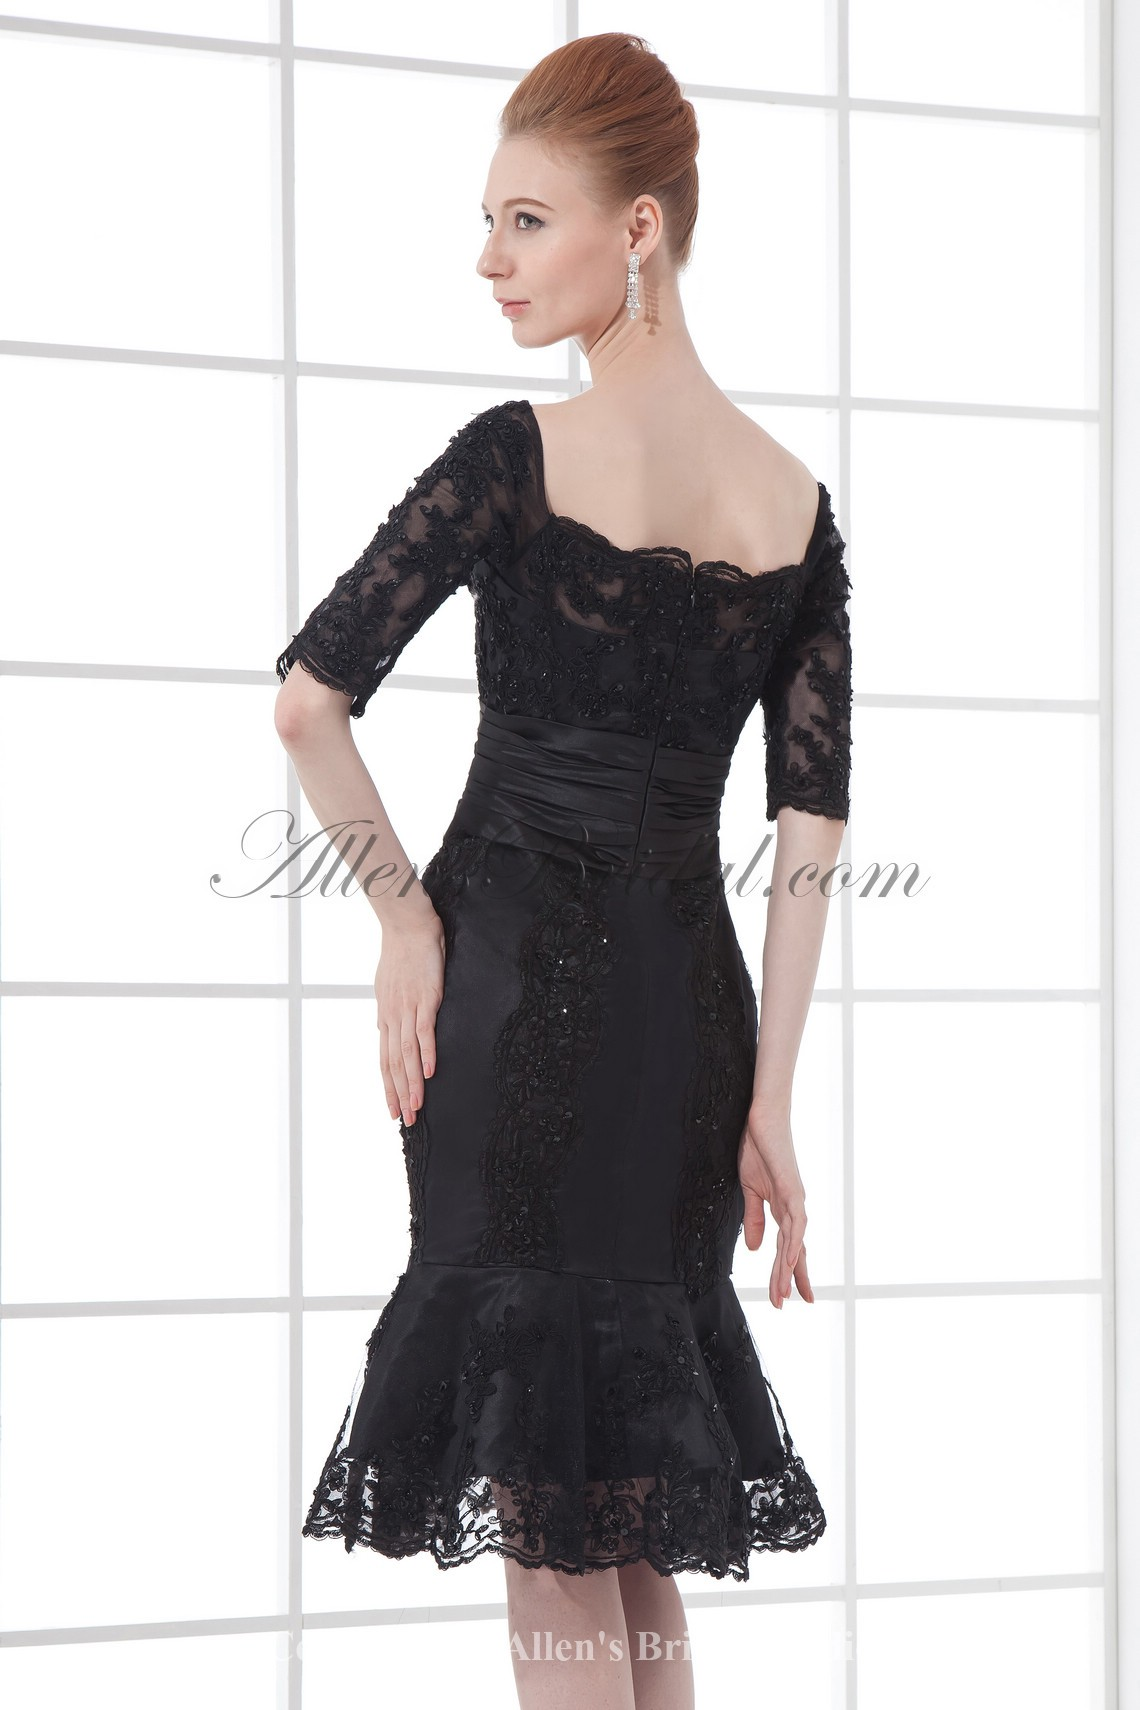 /75-599/lace-off-the-shoulder-neckline-sheath-knee-length-half-sleeves-cocktail-dress.jpg